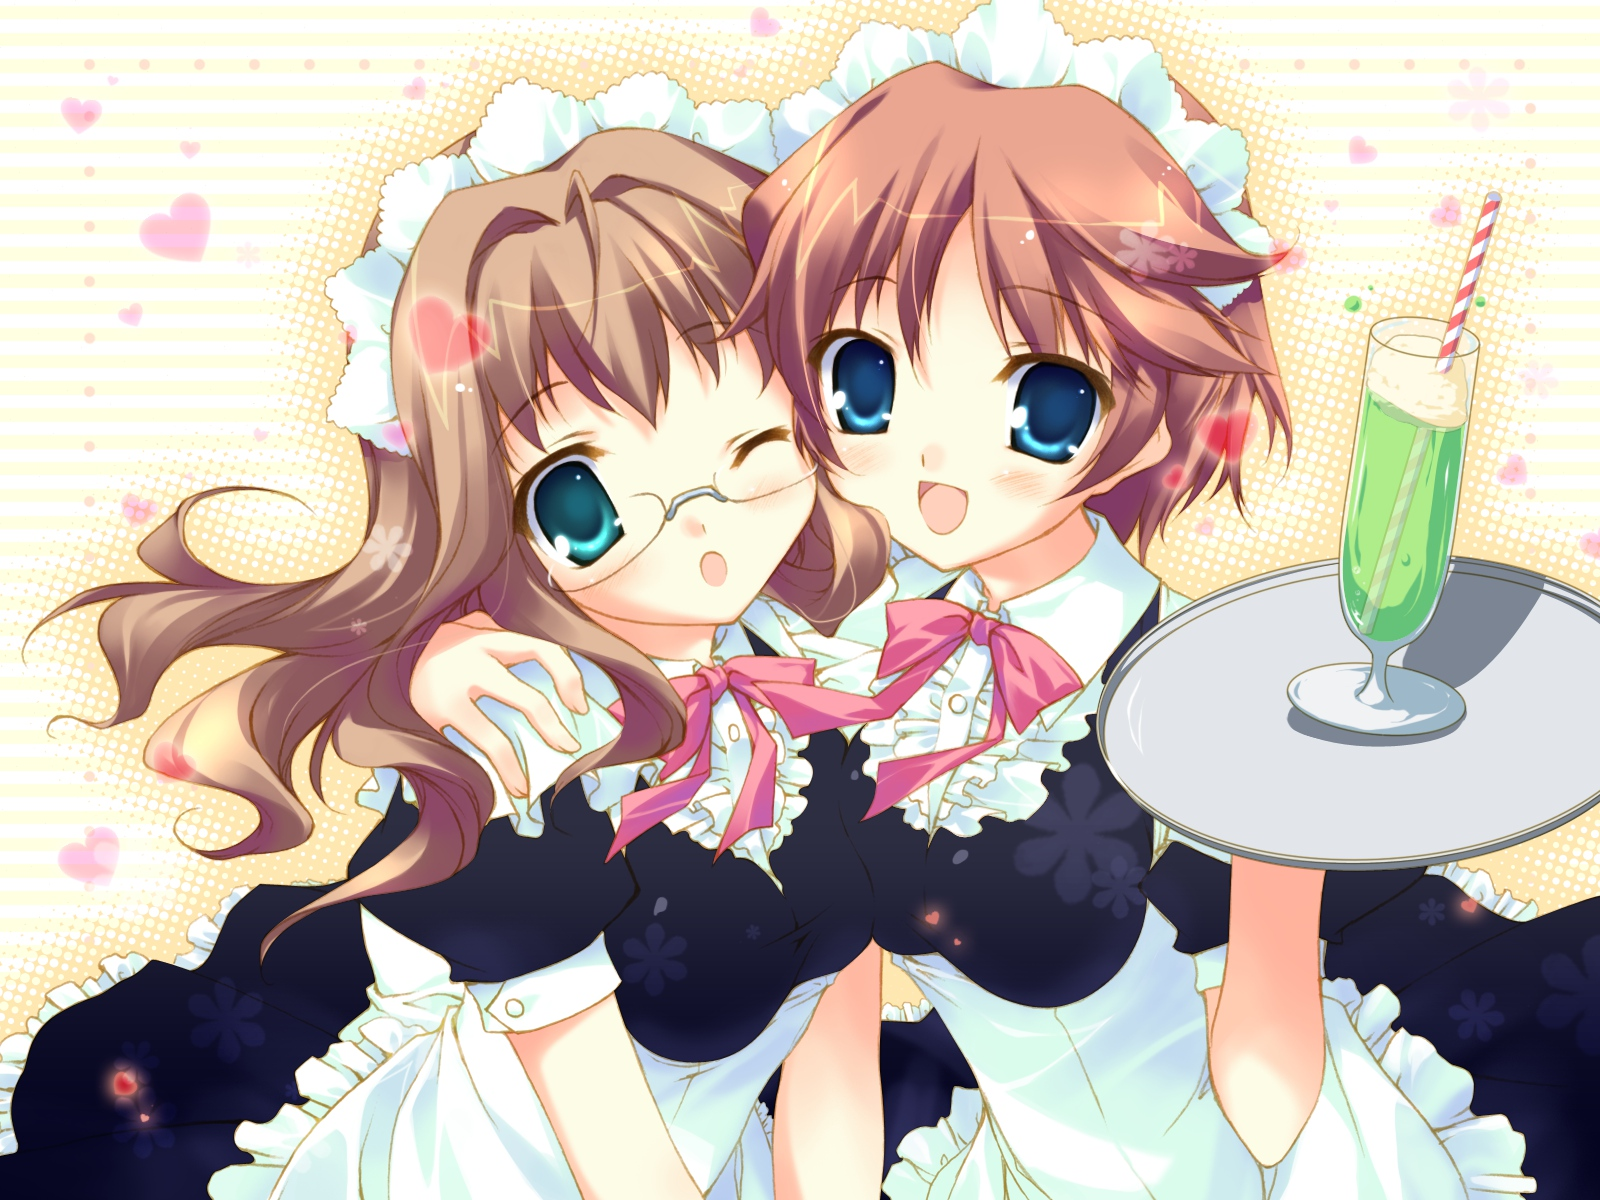 2girls aqua_eyes blue_eyes brown_hair chikotam cuffs_(studio) drink glasses hazuki_mao hazuki_rio headdress maid onii-chan_daaisuki! waitress wink